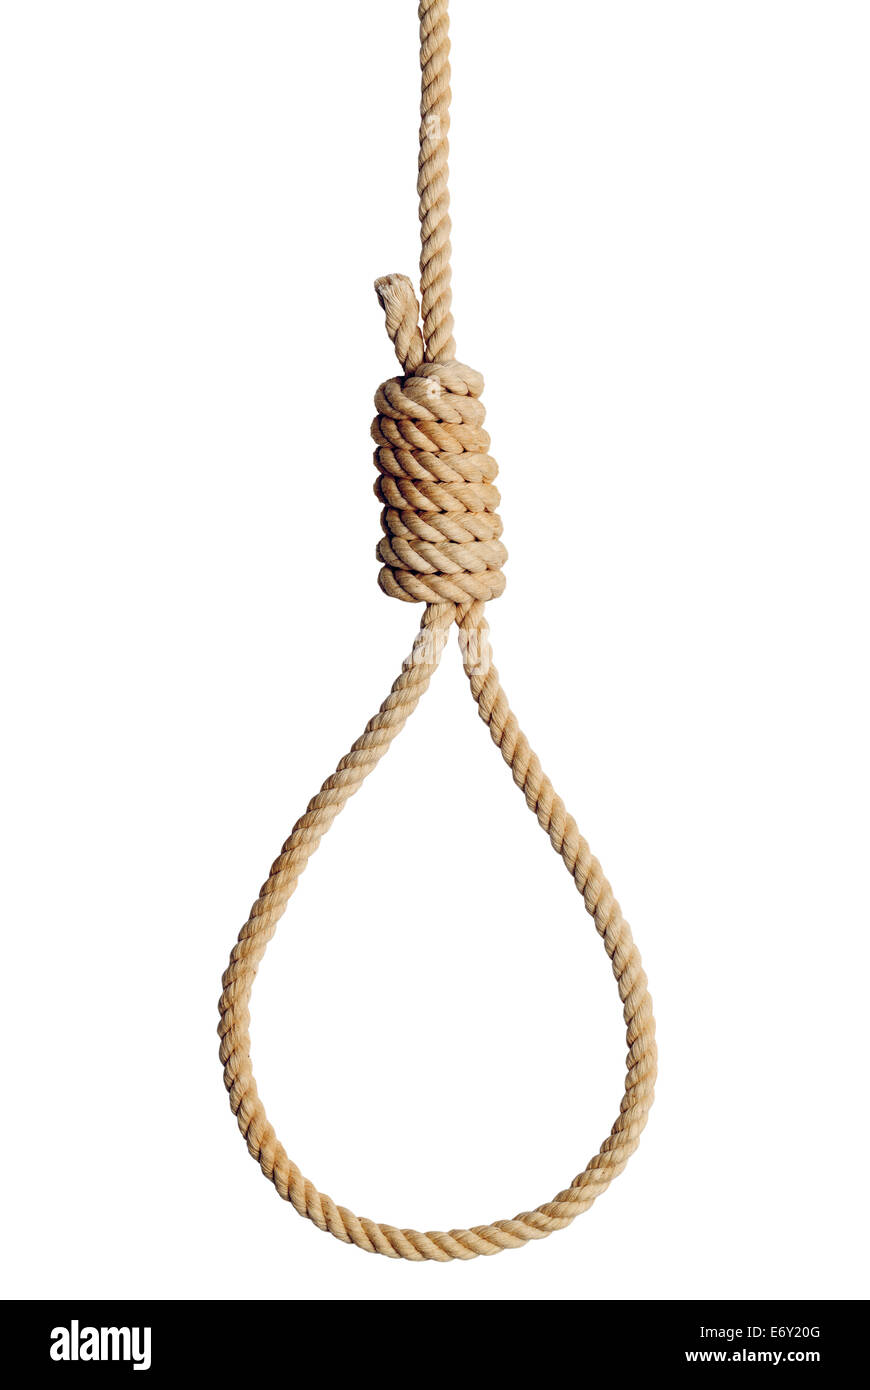 Old West Hang Mans Noose Isolated on White Background. - Stock Image